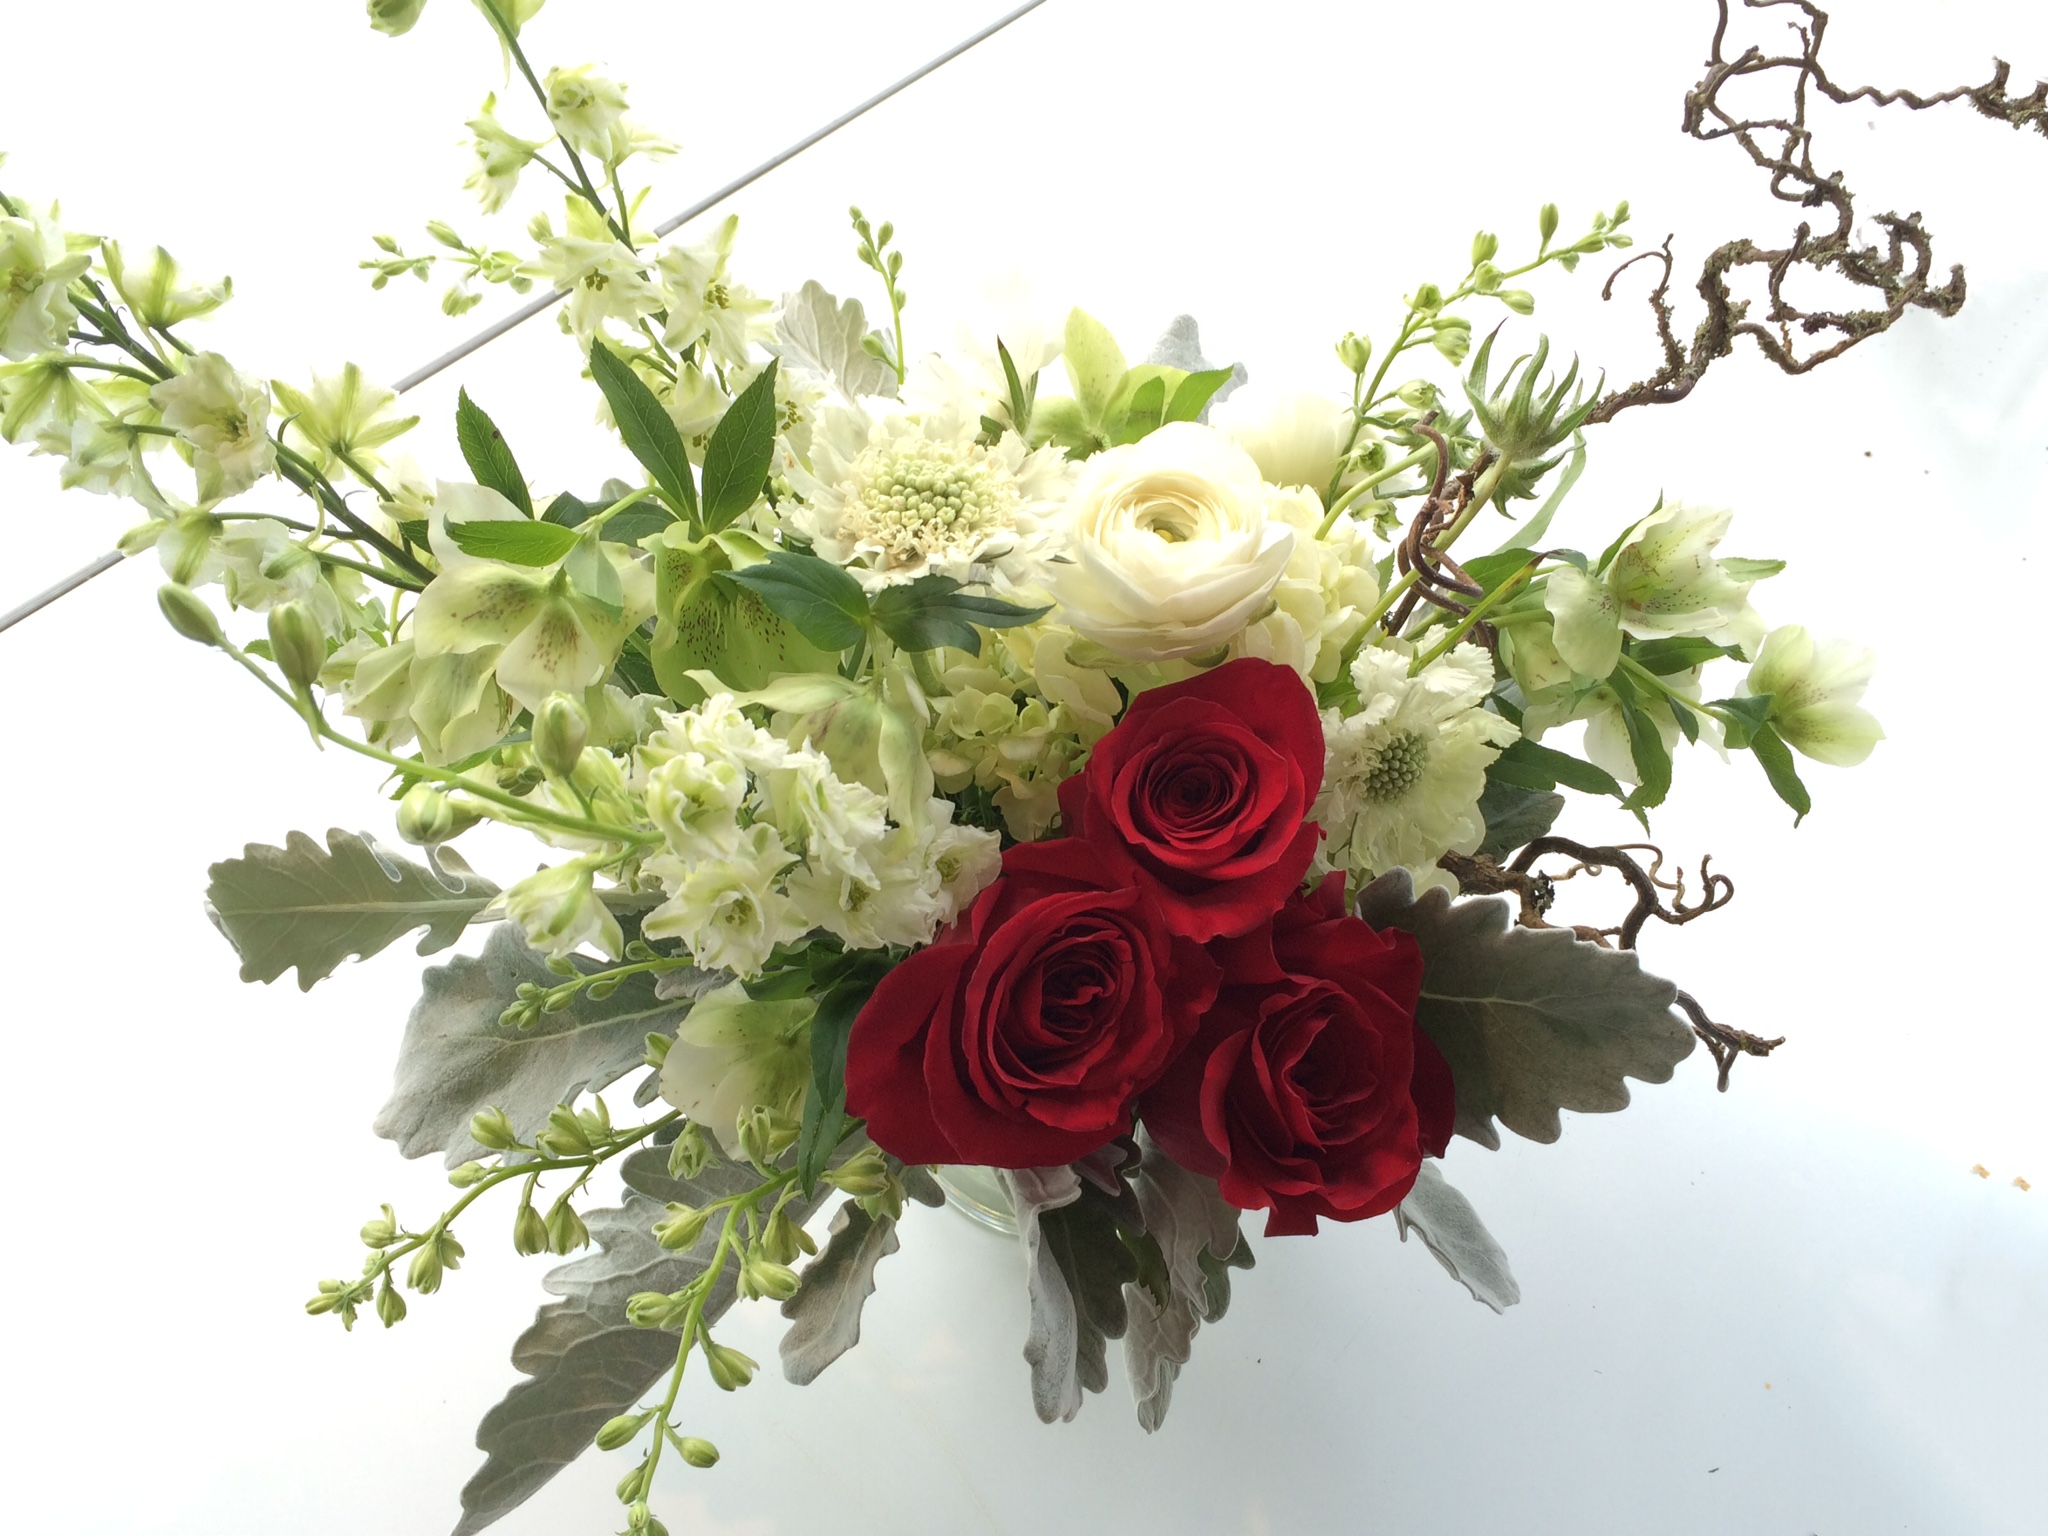 2. Winter Bouquet with Red Rose Accent